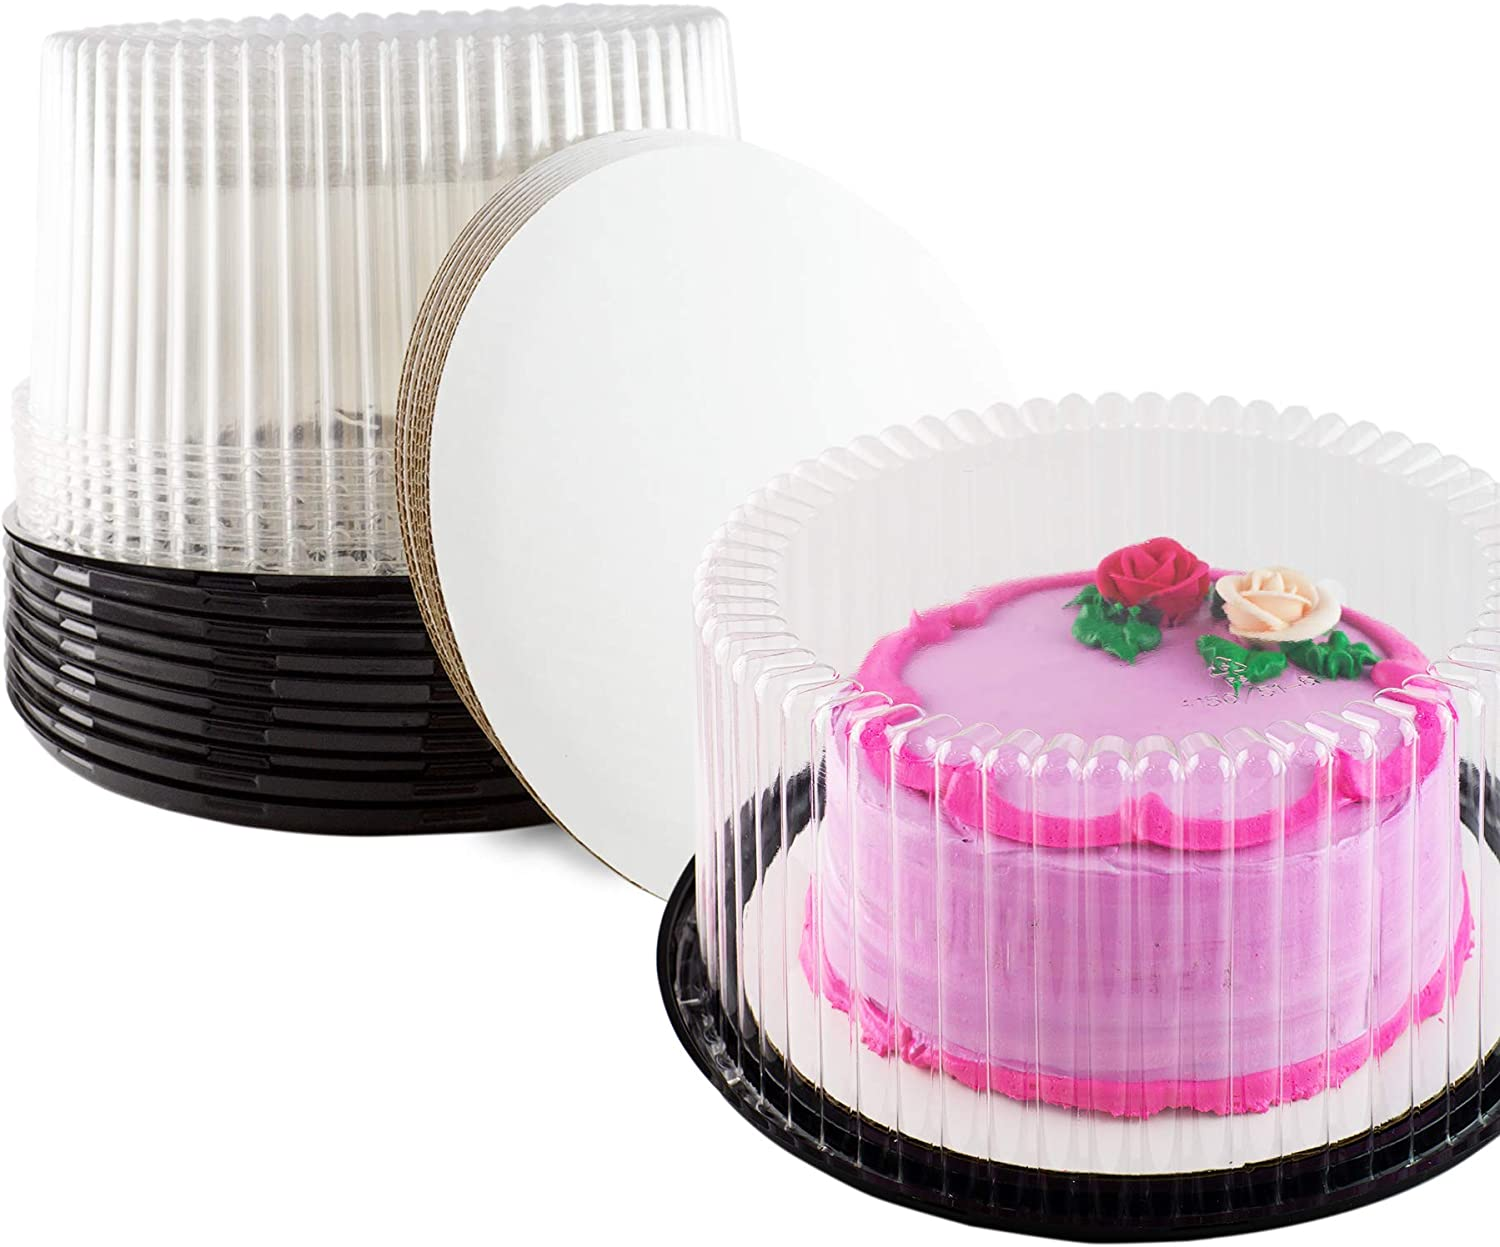 Plastic Cake Container & Board Set By Chefible  Extra-Strong Transparent Round 10  Bakery Display Storage Boxes With Base, Tall Dome Lid & Honeycomb Design + Sturdy 10  Corrugated White Circles